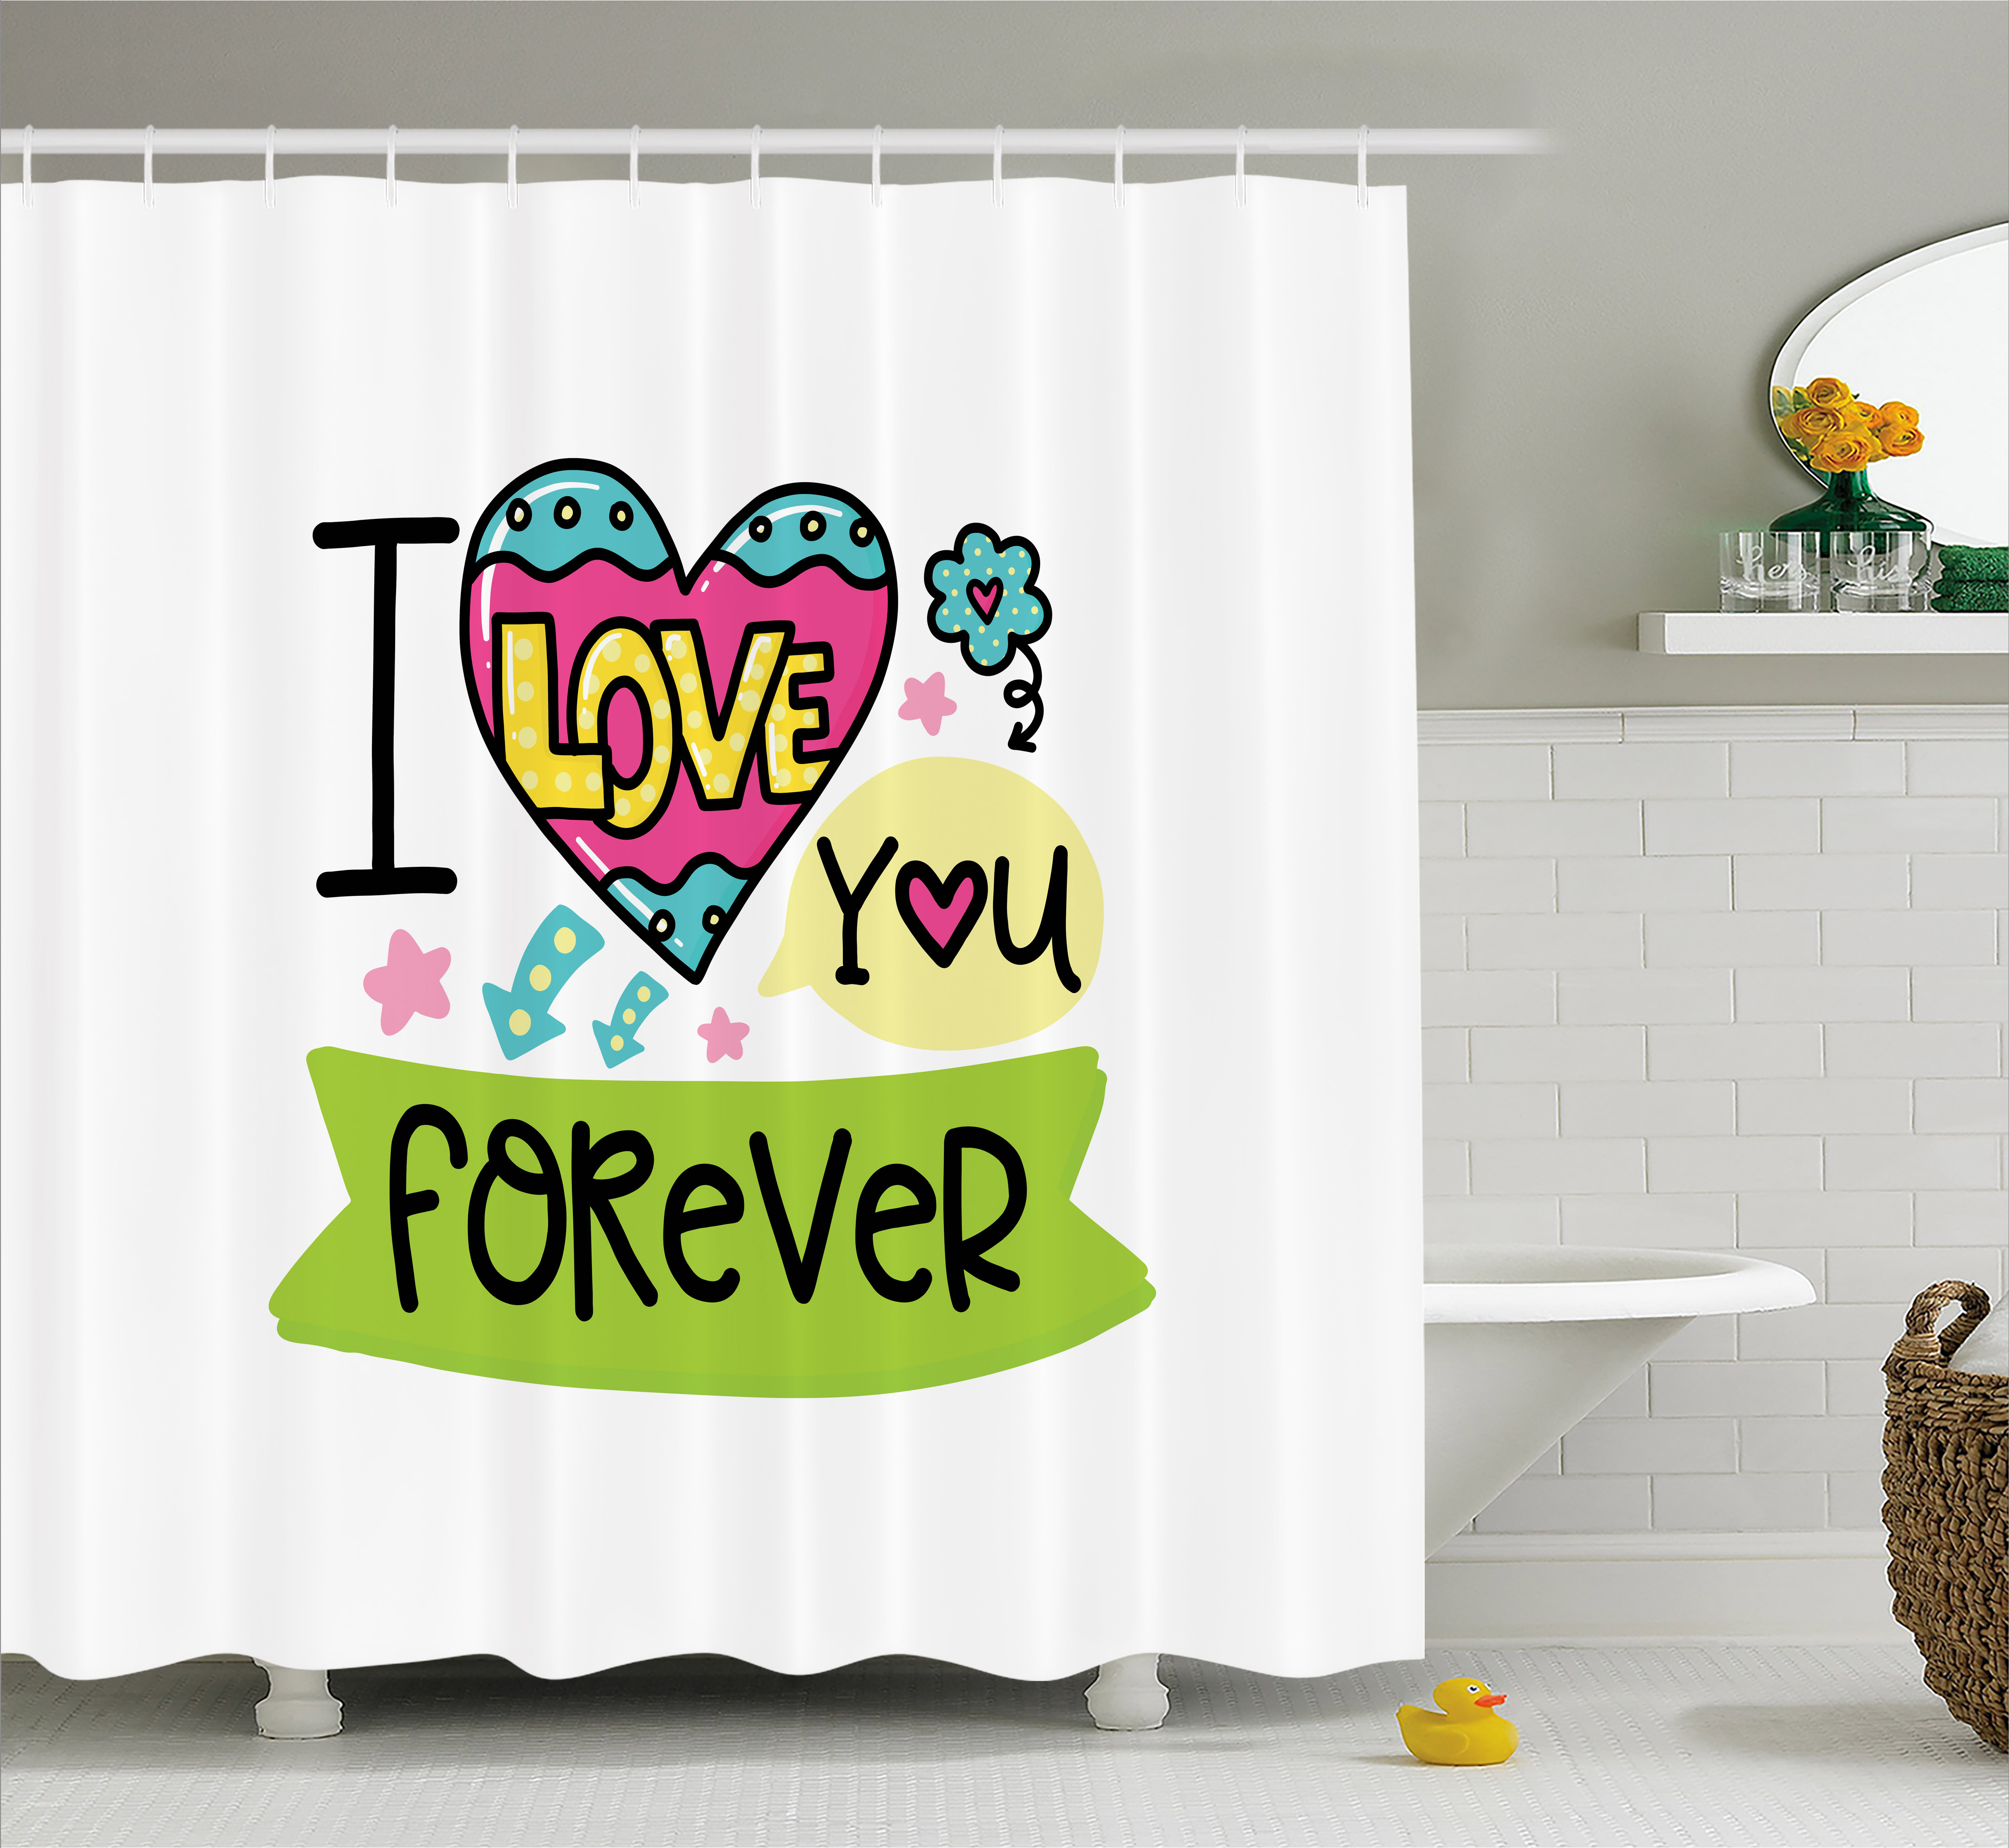 Romantic Shower Curtain, I Love Your Forever Valentines Day Theme Phrase with Childish Design Elements, Fabric Bathroom Set with Hooks, 69W X 75L Inches Long, Multicolor, by Ambesonne